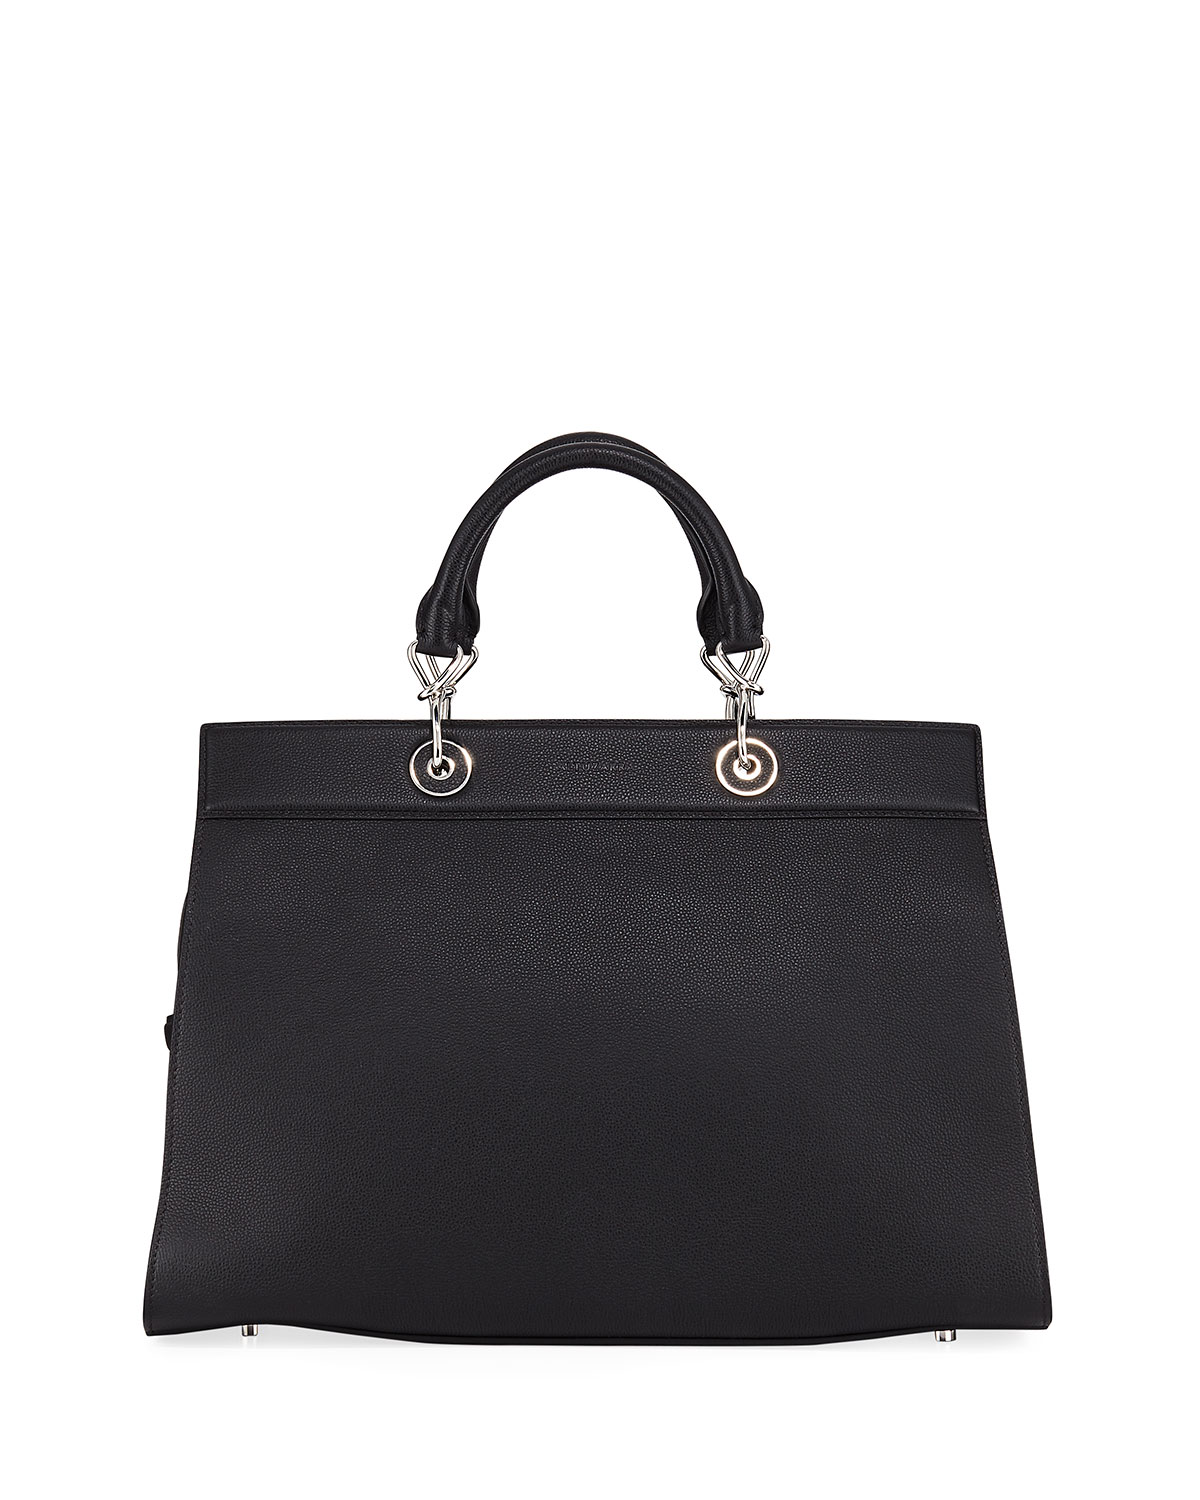 d85f918877d2 Altuzarra Large Shadow Leather Tote Bag